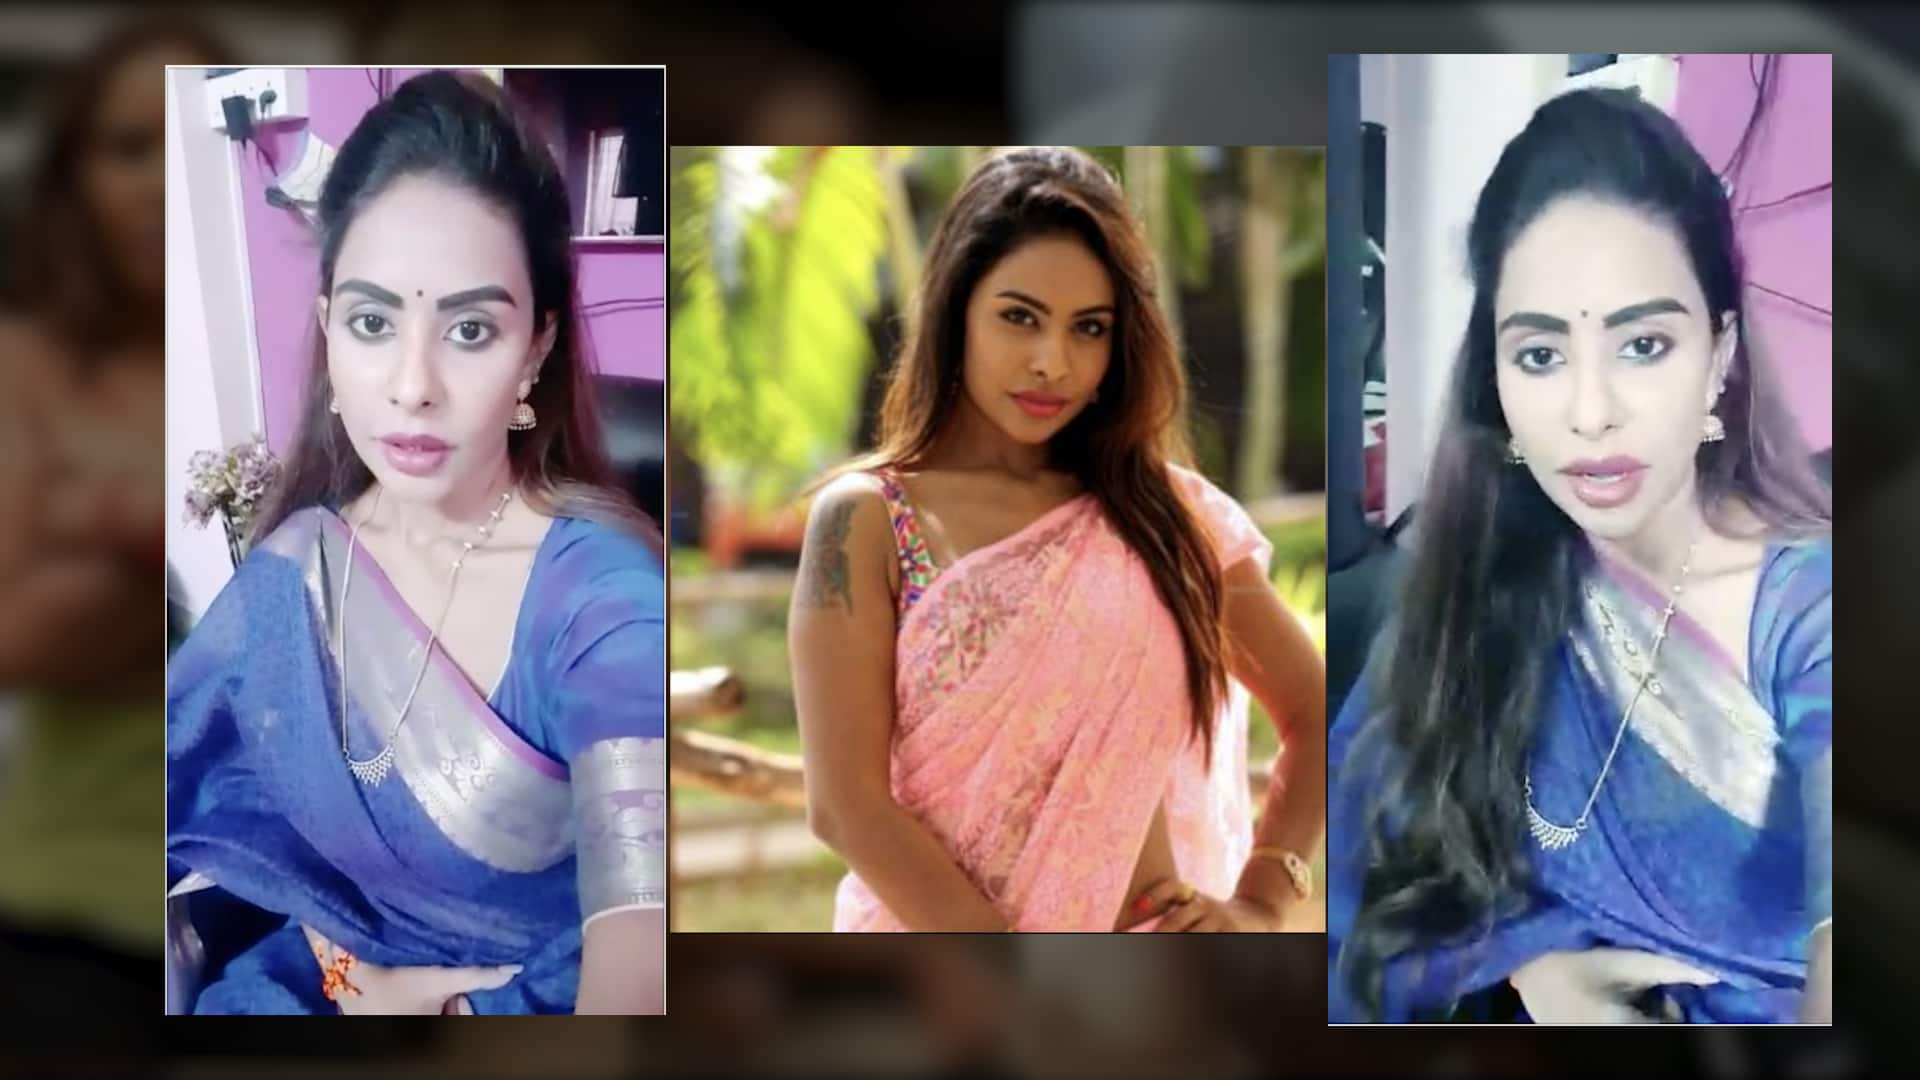 In the film Industry, people are using me as sex-doll: Actress Sri Reddy in an exclusive interview